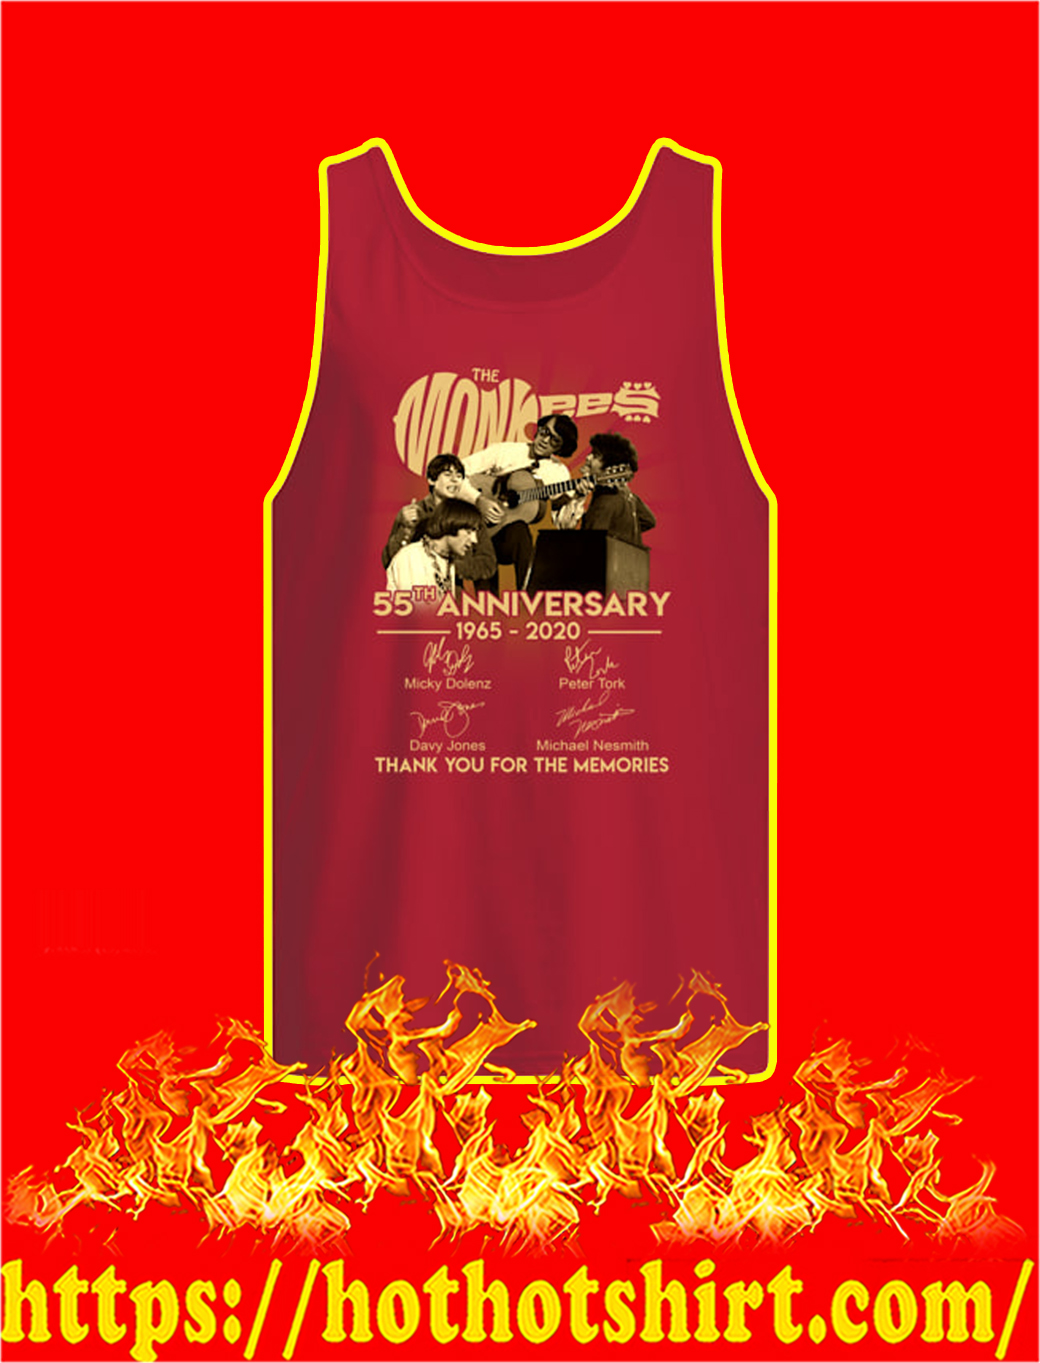 The Monkees 55th Anniversary 1965 2020 tank top